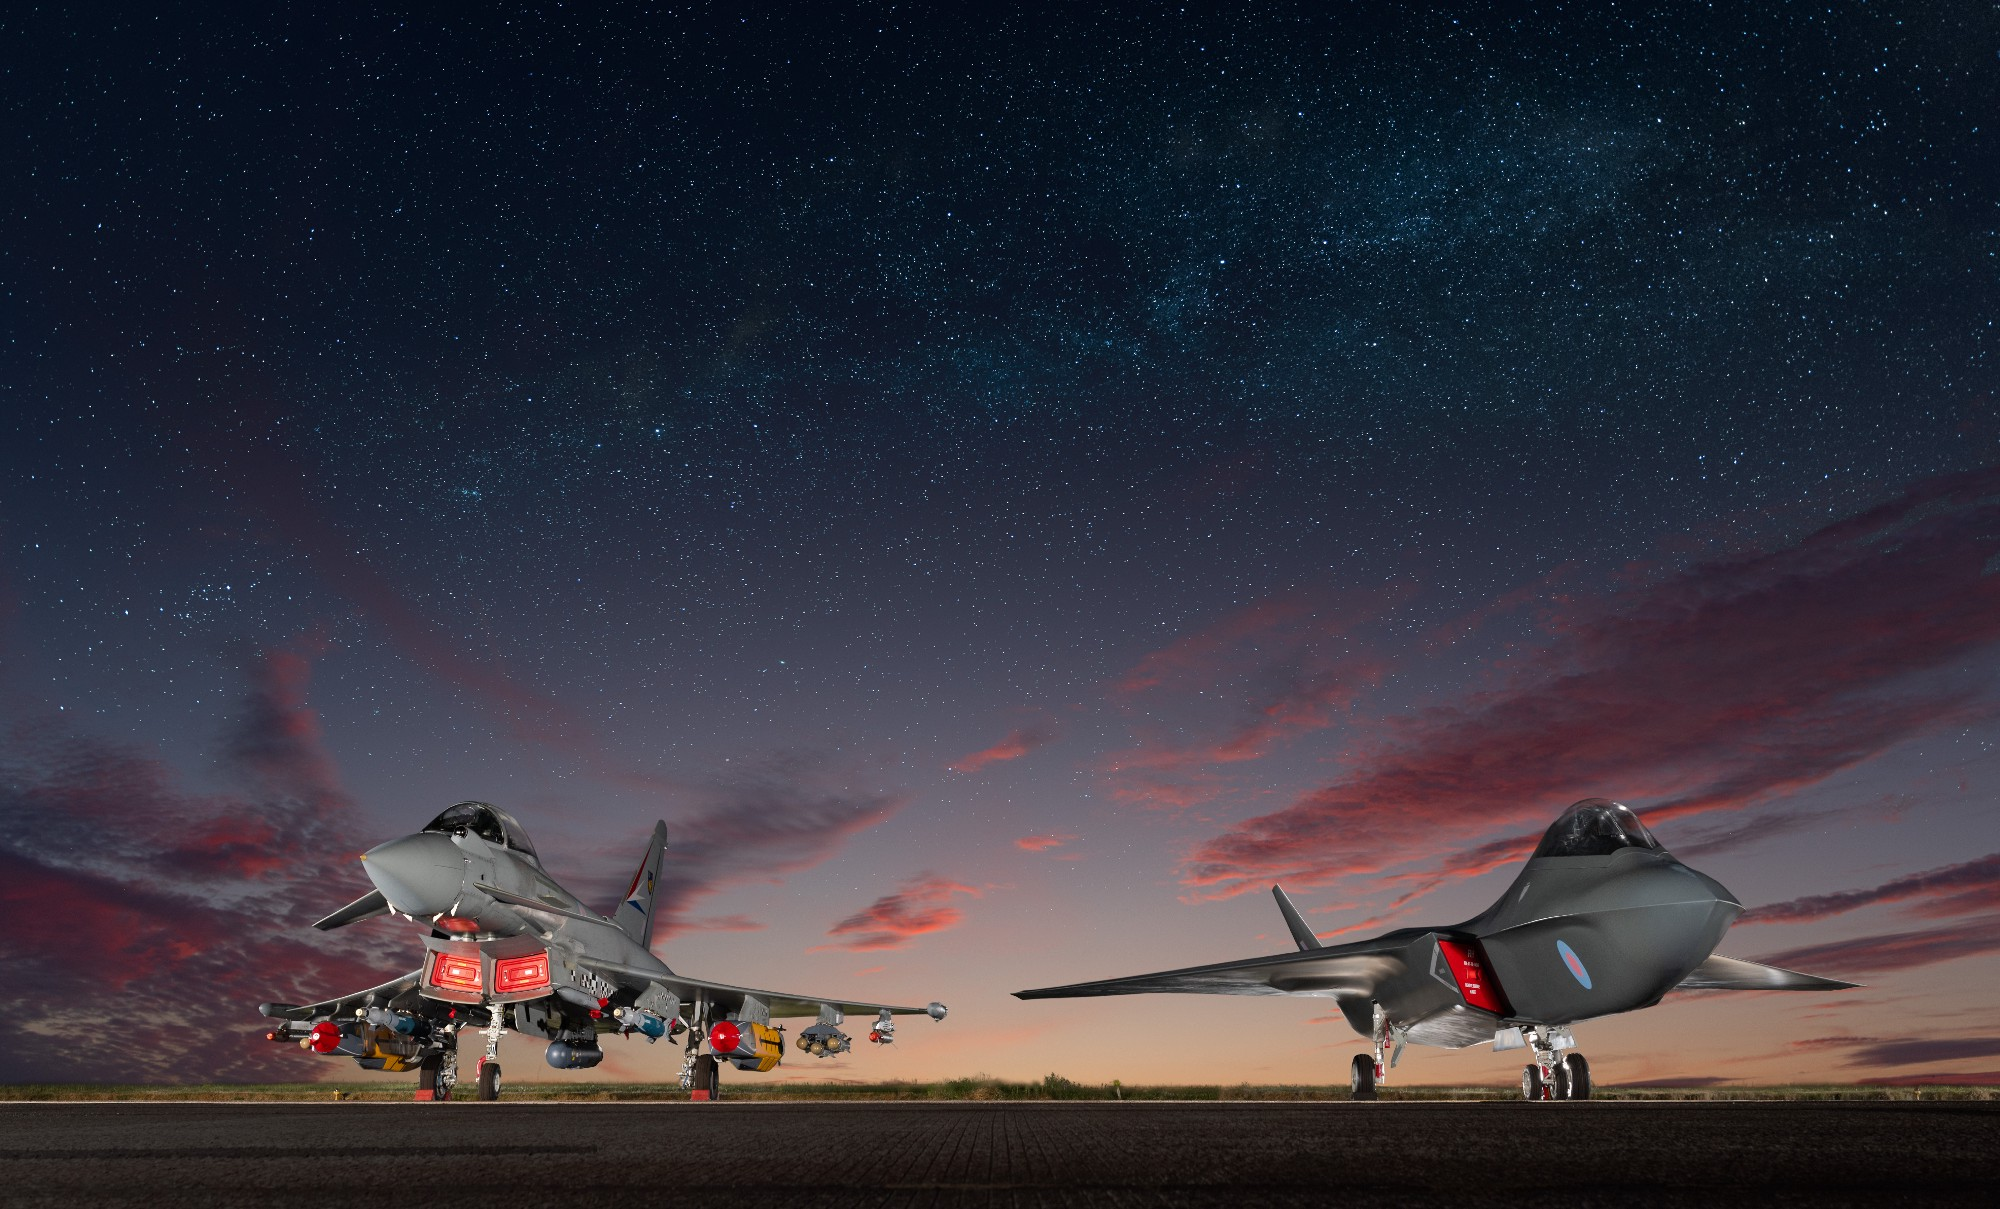 A Typhoon jet on the left next to a model Tempest jet on the right